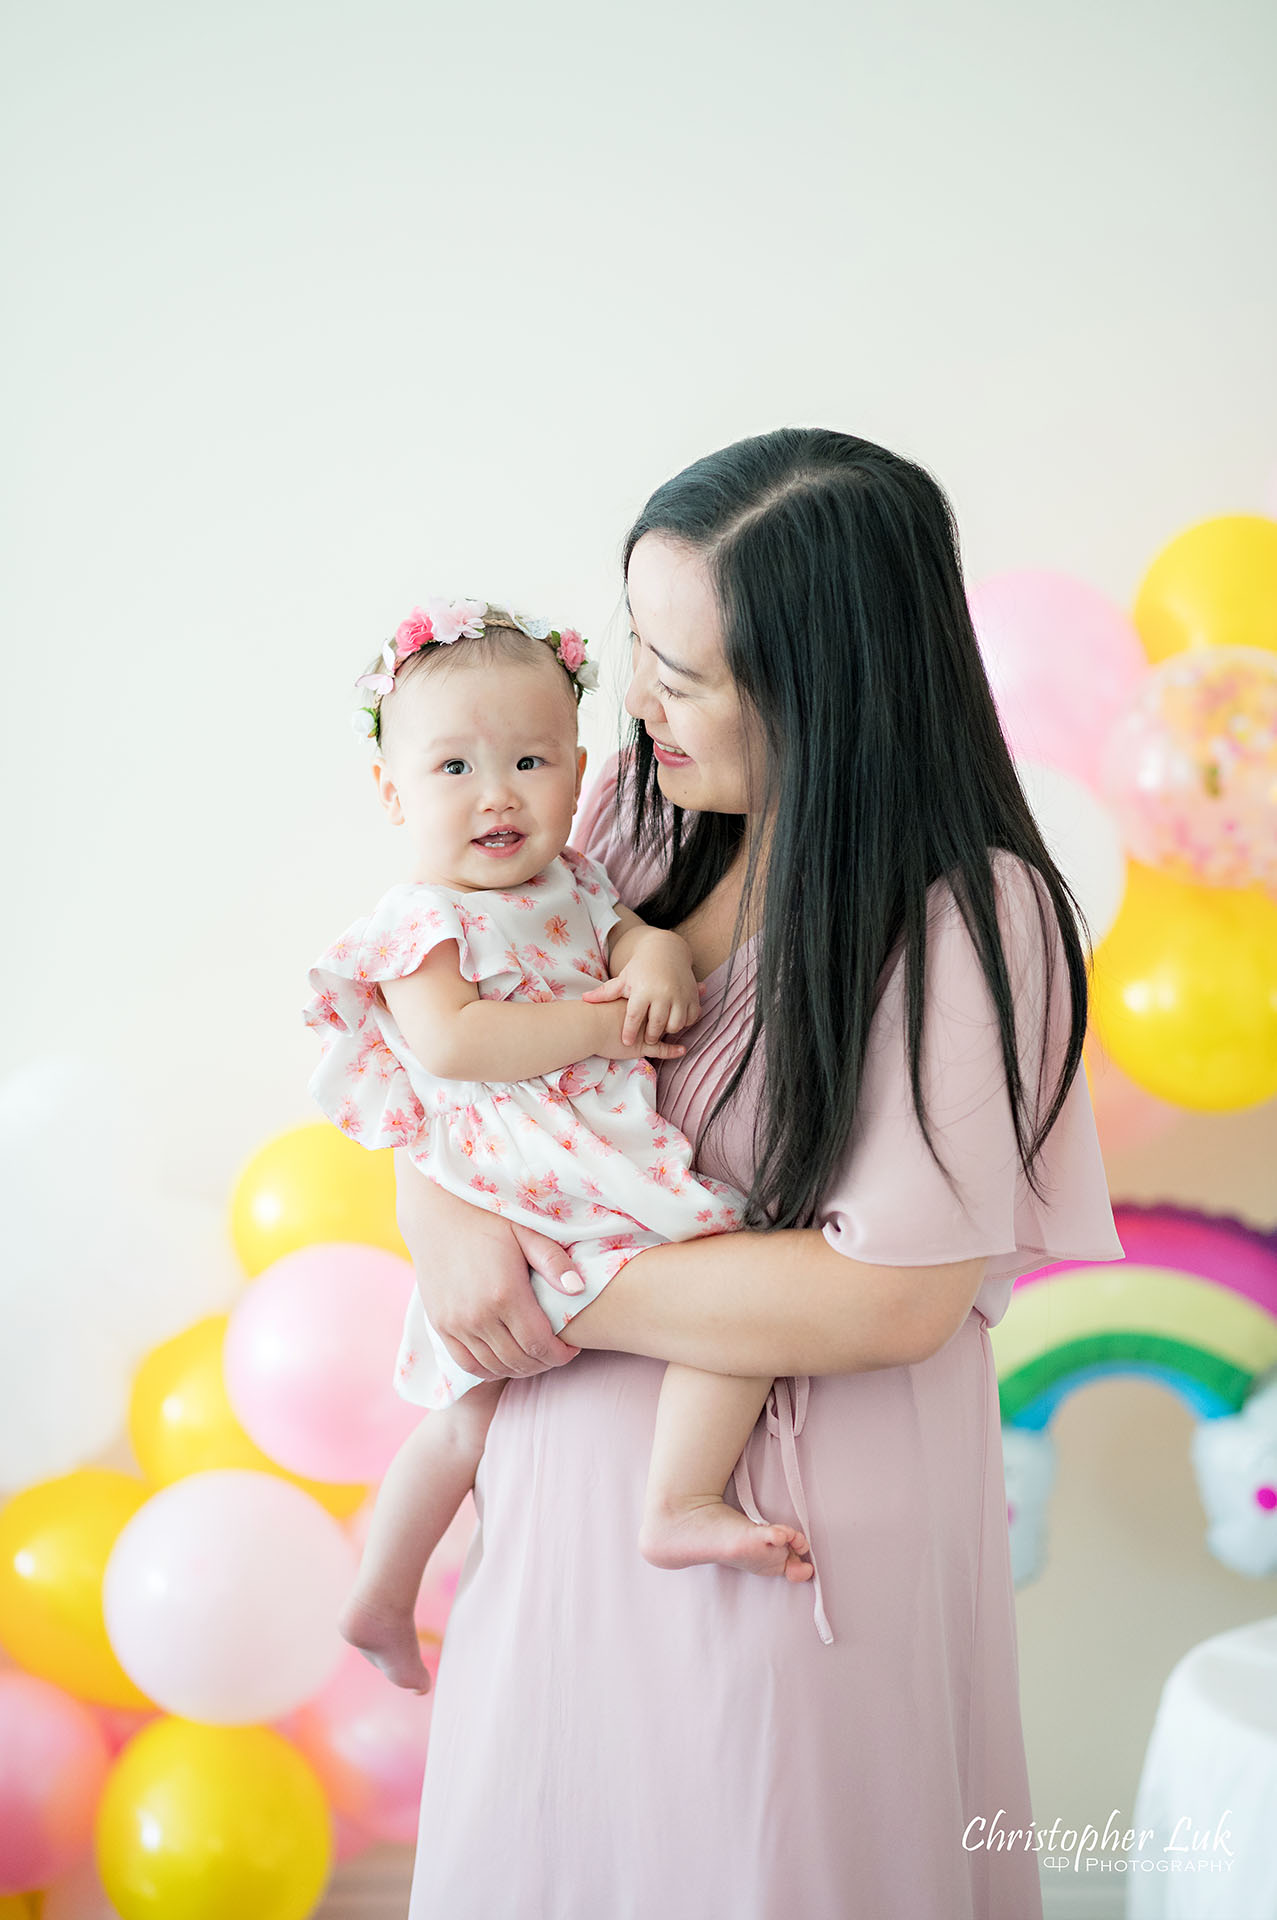 Christopher Luk Toronto Markham Family Photographer Baby Girl First Birthday Balloon Arch Rainbow Pink Sun Clouds Decor Mother Mom Daughter Motherhood Hug Smile Laugh Natural Candid Photojournalistic Portrait